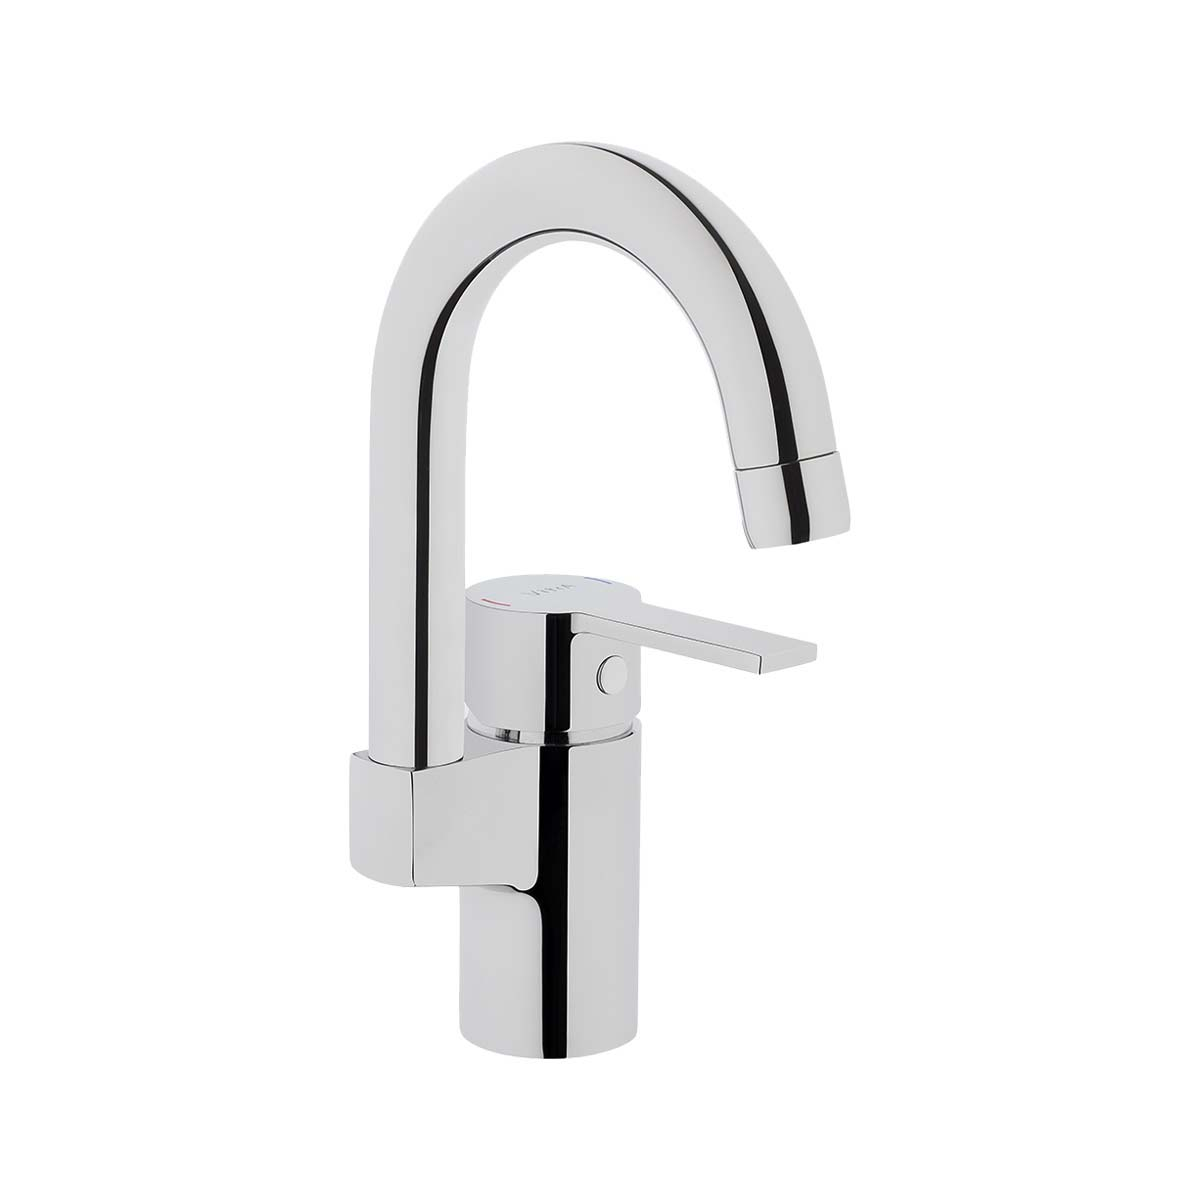 Basin mixer (with swivel spout)